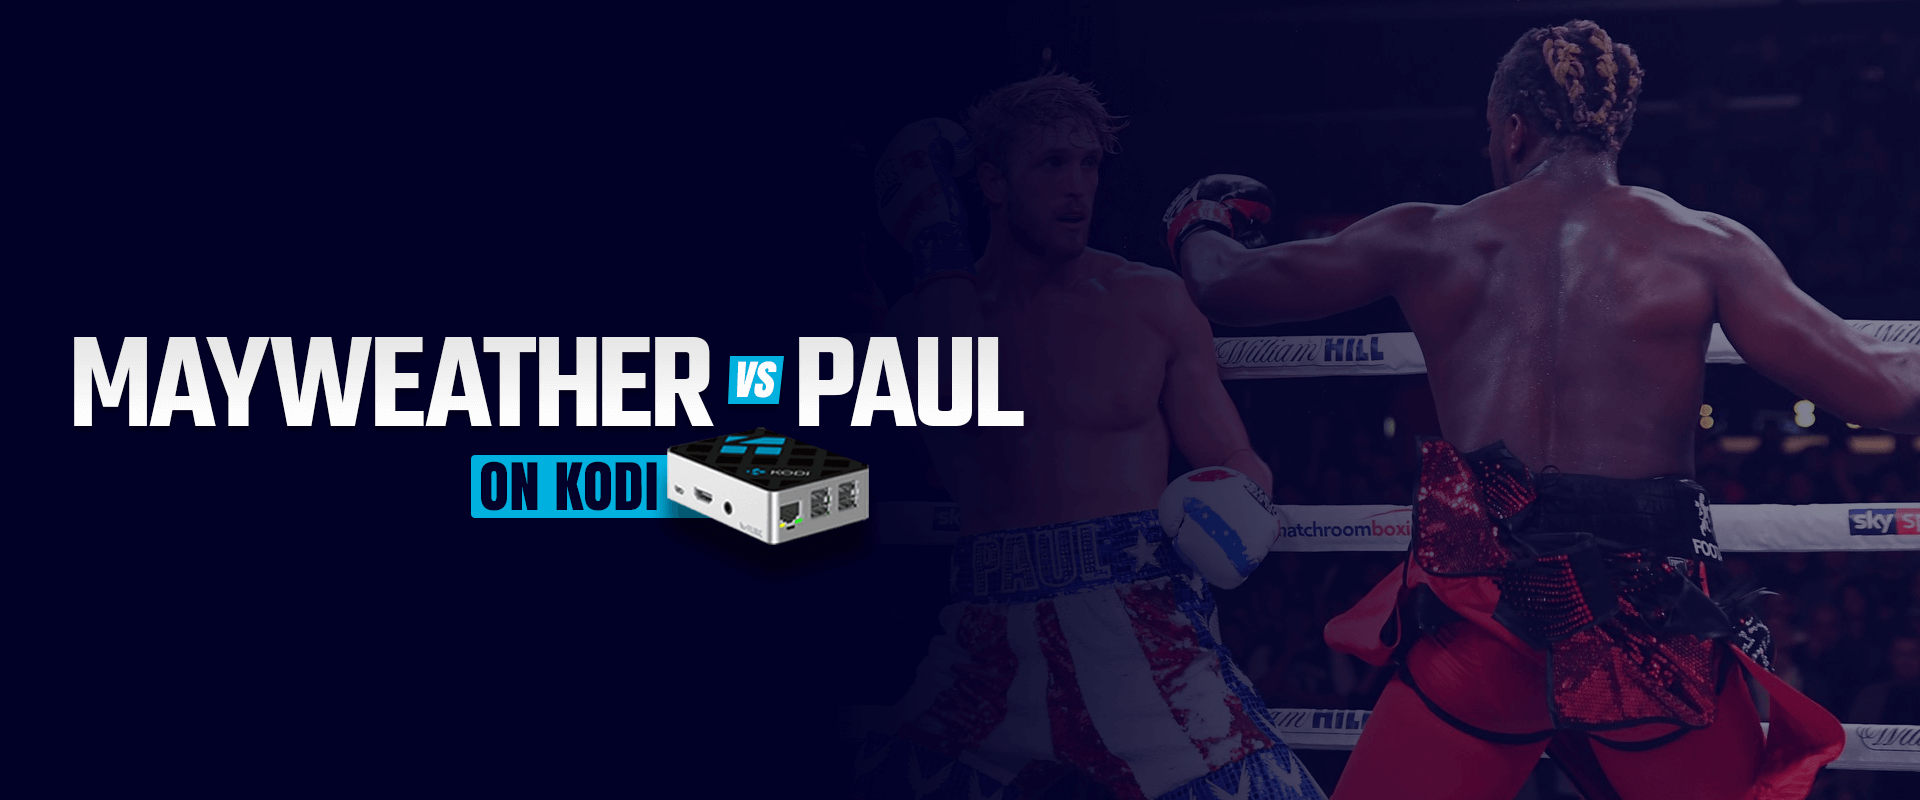 Floyd Mayweather Vs Logan Paul : Floyd Mayweather Vs. Logan Paul: Fight card, date, PPV price, rules, 2021 exhibition match ... : And, yes, logan paul is 25 and will have a weight advantage of approximately 50 pounds.